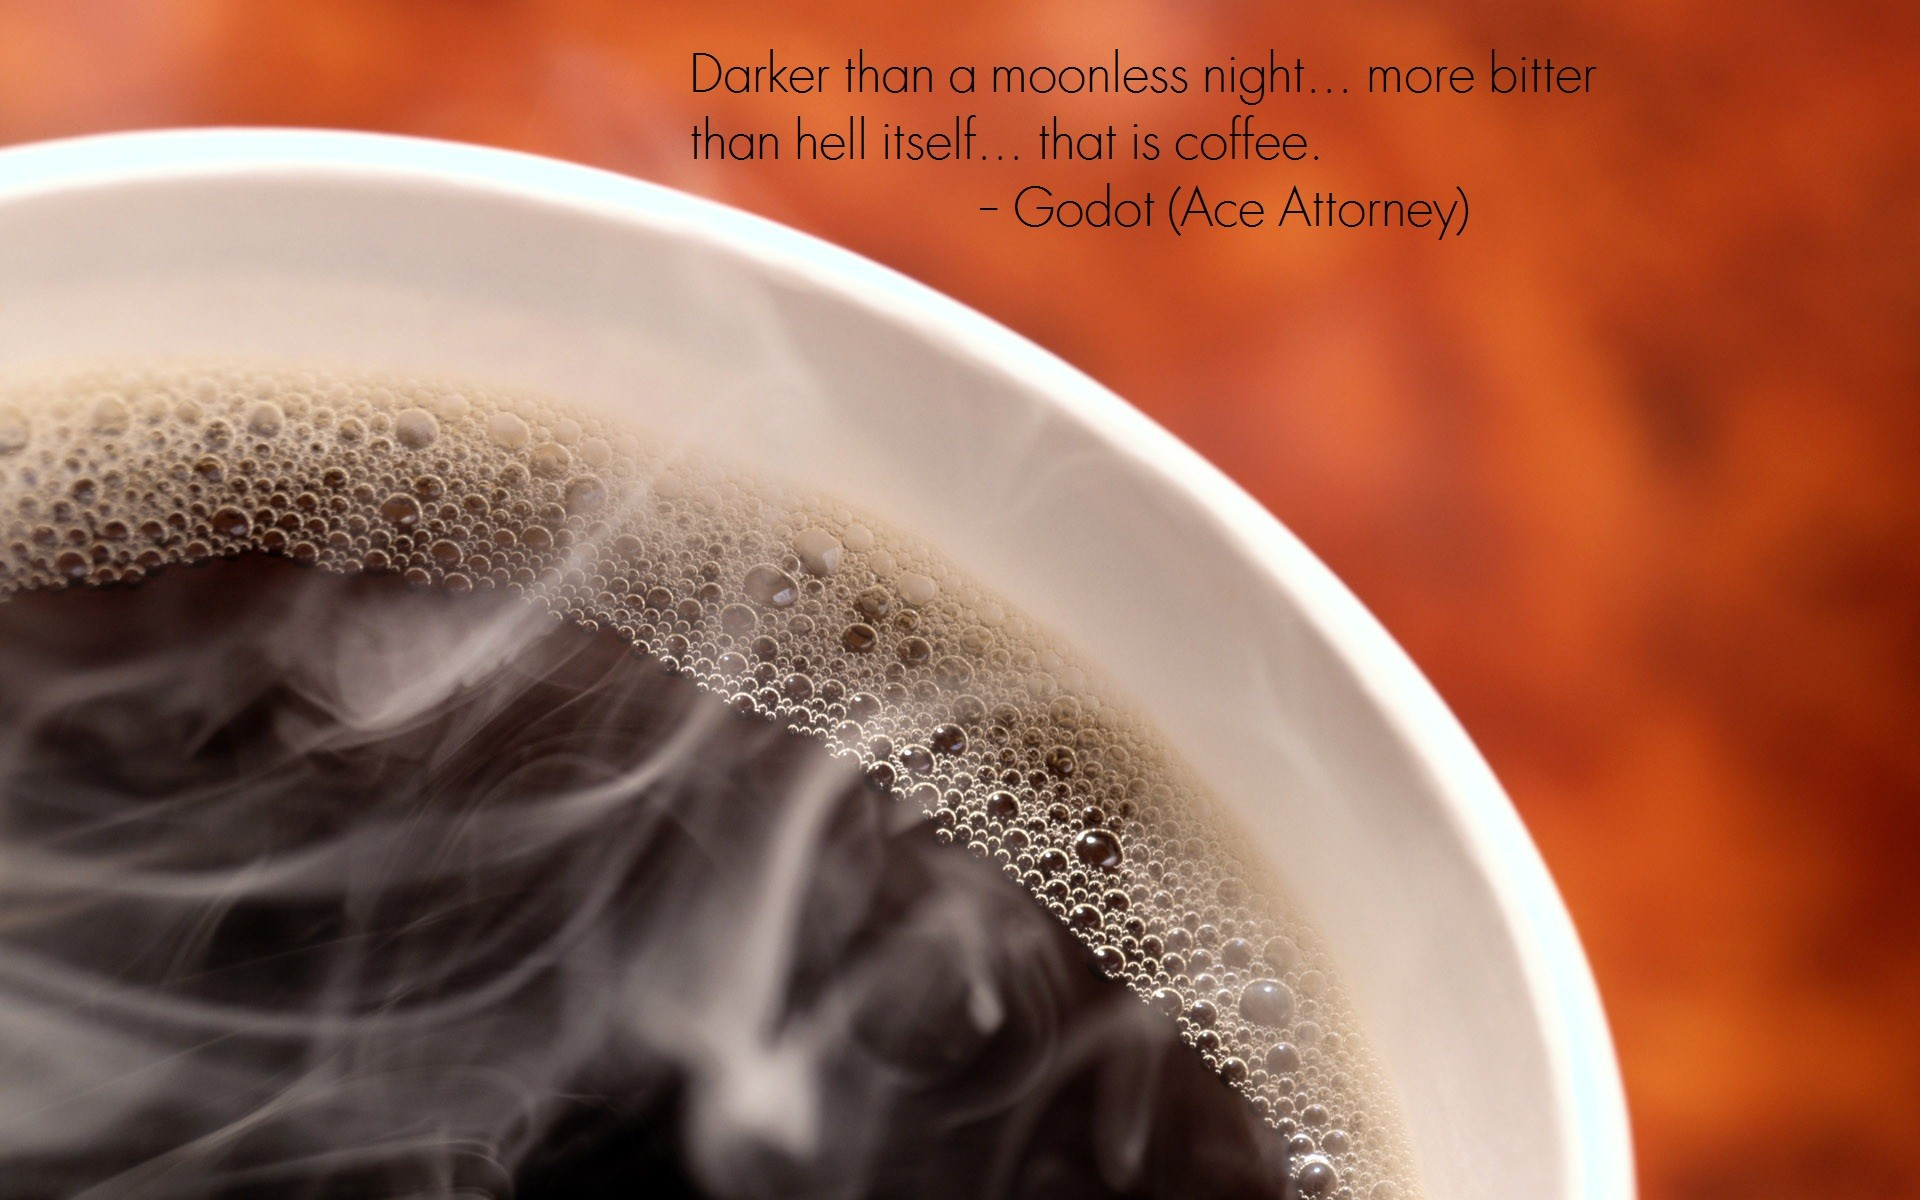 Darker Than A Moonless Night, More Better Than Hell Itself, That Is Coffee. - Godot